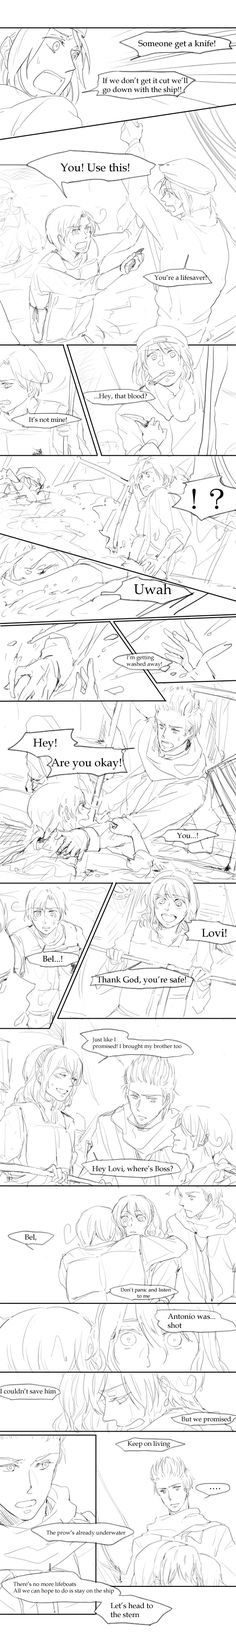 Hetalia Titanic Part 14/18 TINY PIECES OF MY HEART ARE SHATTERING EACH TIME HNG